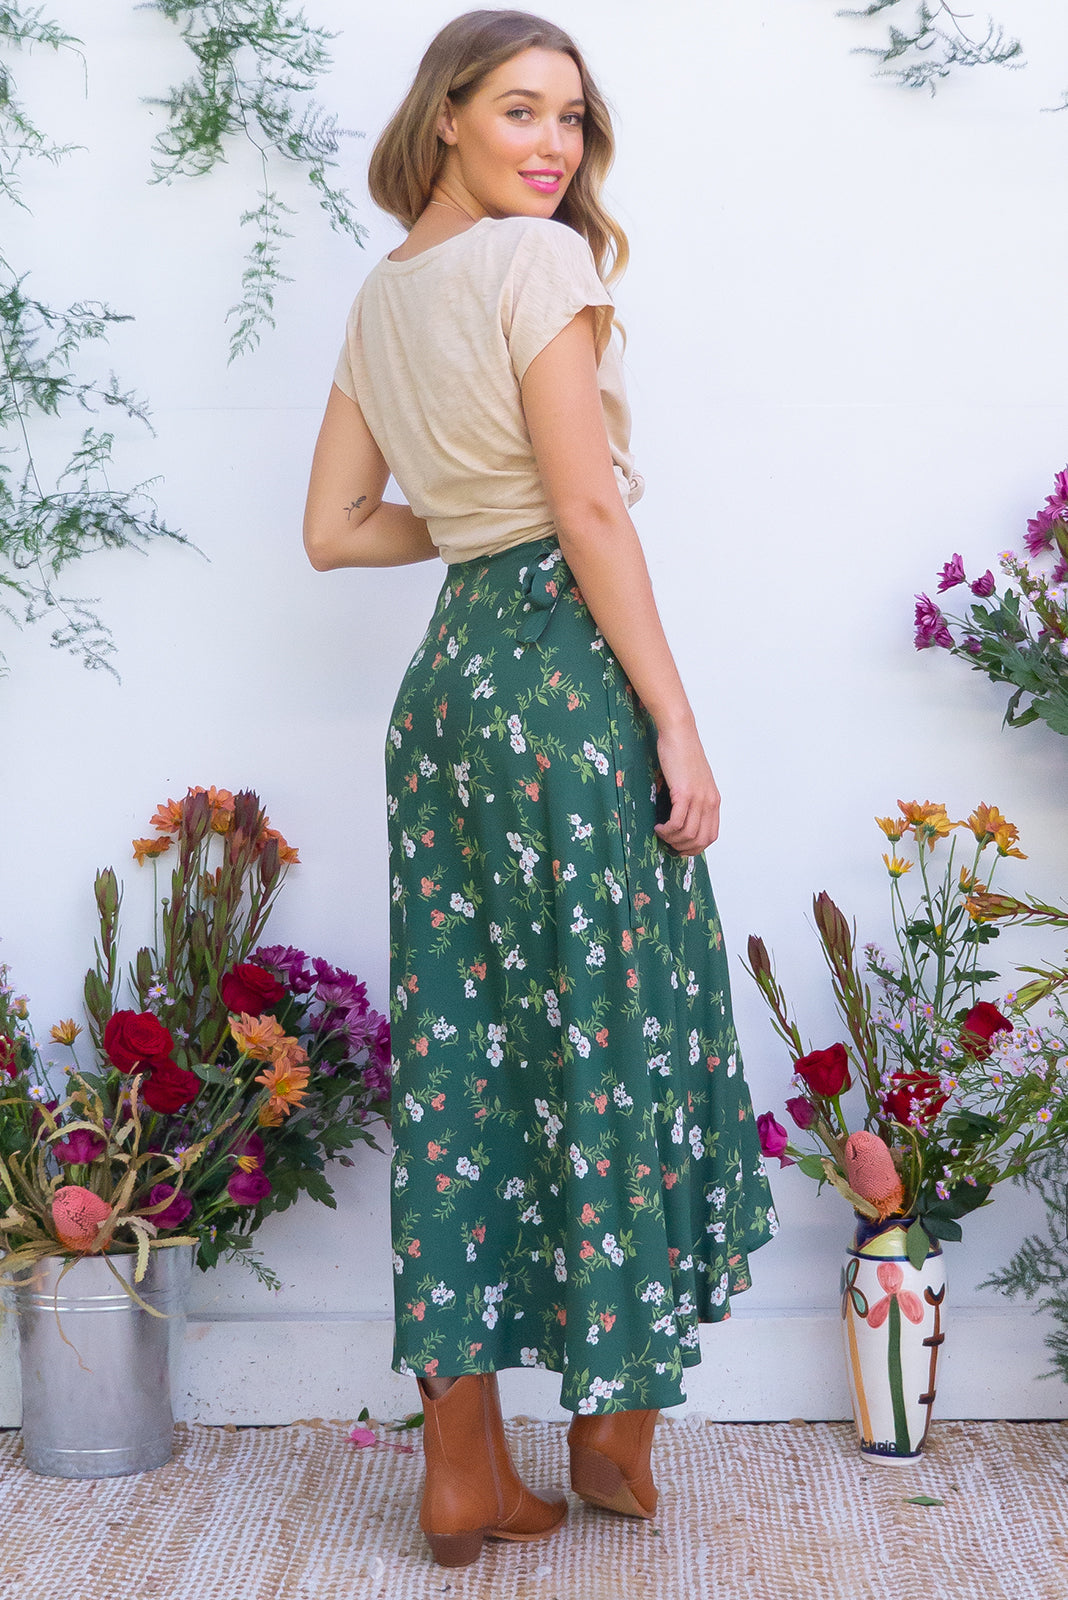 Penny Lane Floral Green Patches Maxi Wrap Skirt with an adjustable wrap around waist and waterfall hemline in a soft woven rayon with a soft green ditzy floral print